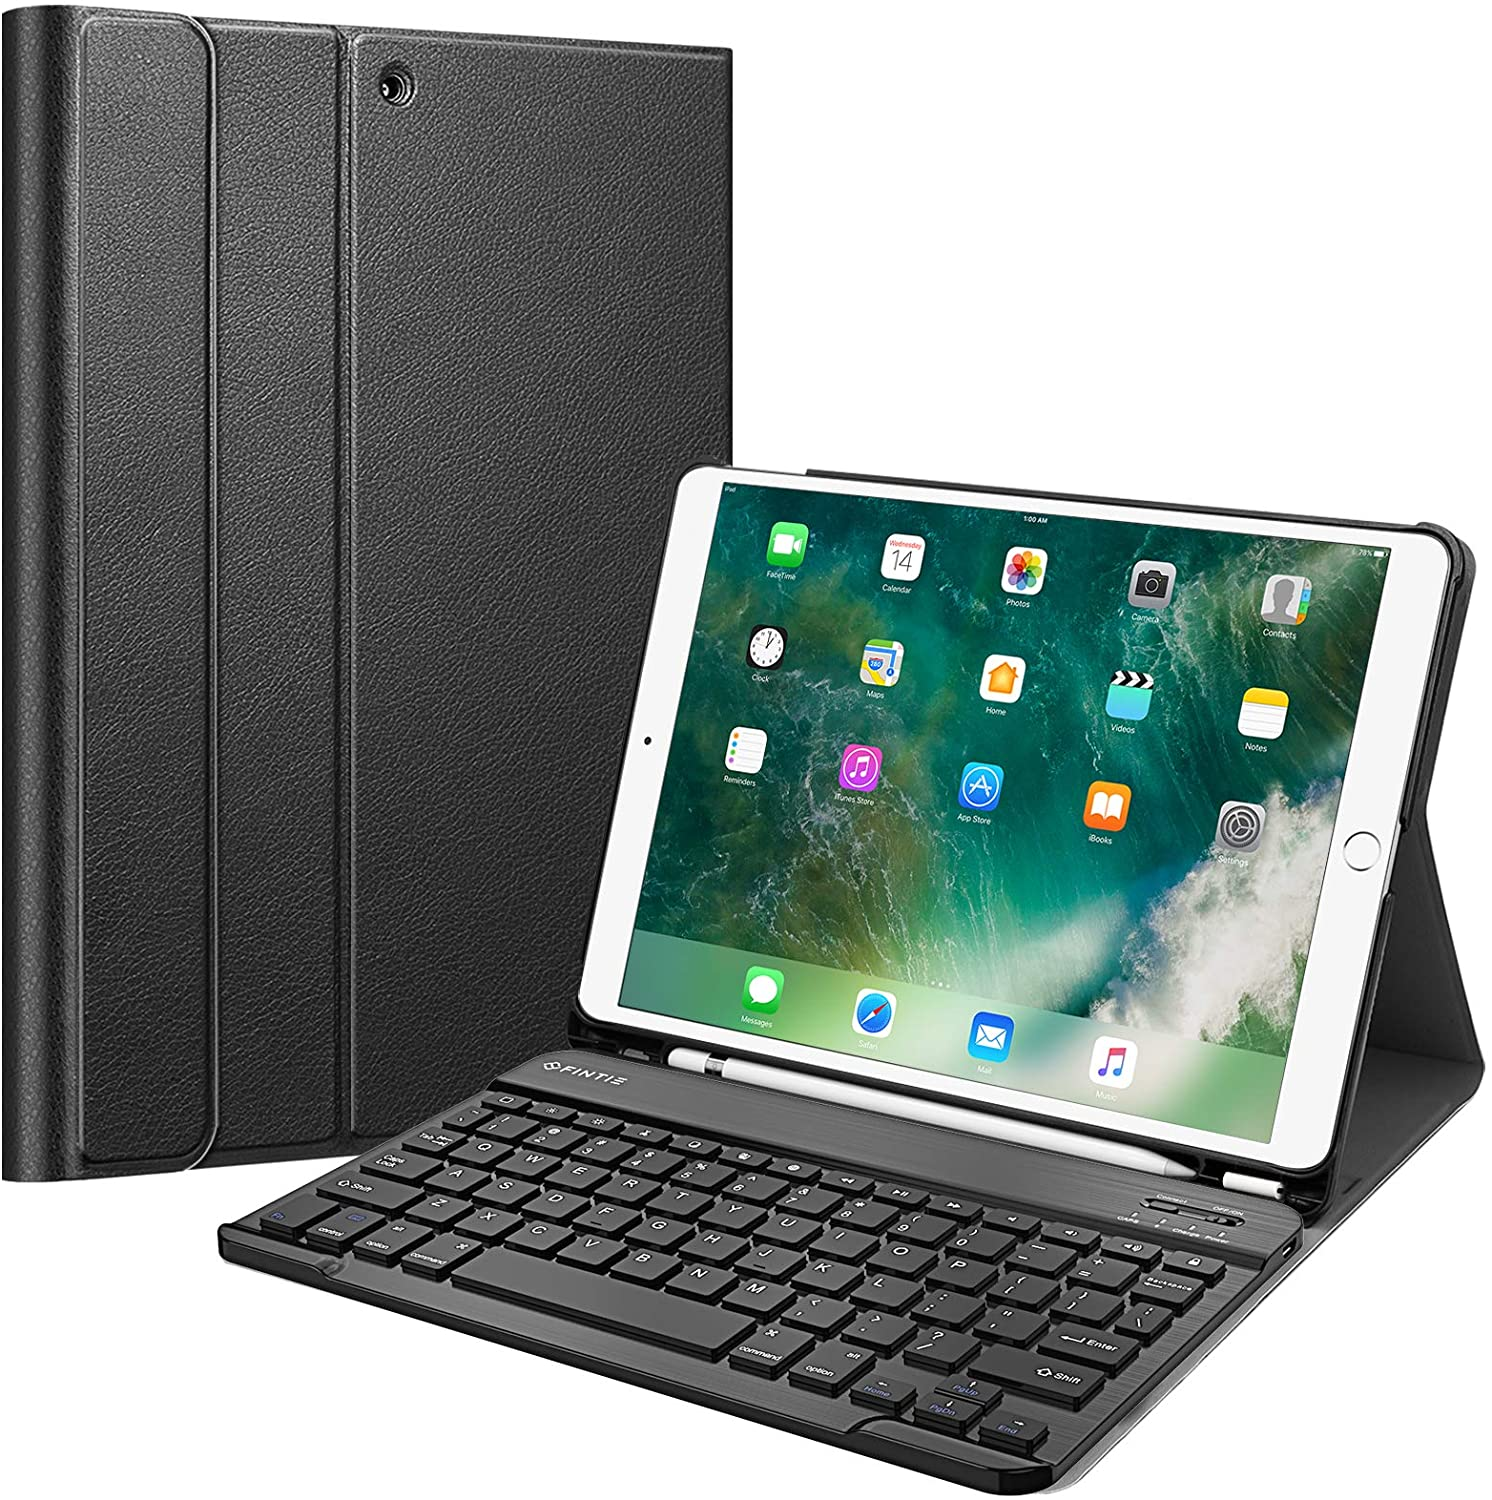 "Fintie Keyboard Case for iPad Air 3rd Gen 10.5"" 2019 / iPad Pro 10.5"" 2017 - SlimShell Stand Protective Cover w/Magnetically Detachable Wireless Bluetooth Keyboard and Pencil Holder, Black"